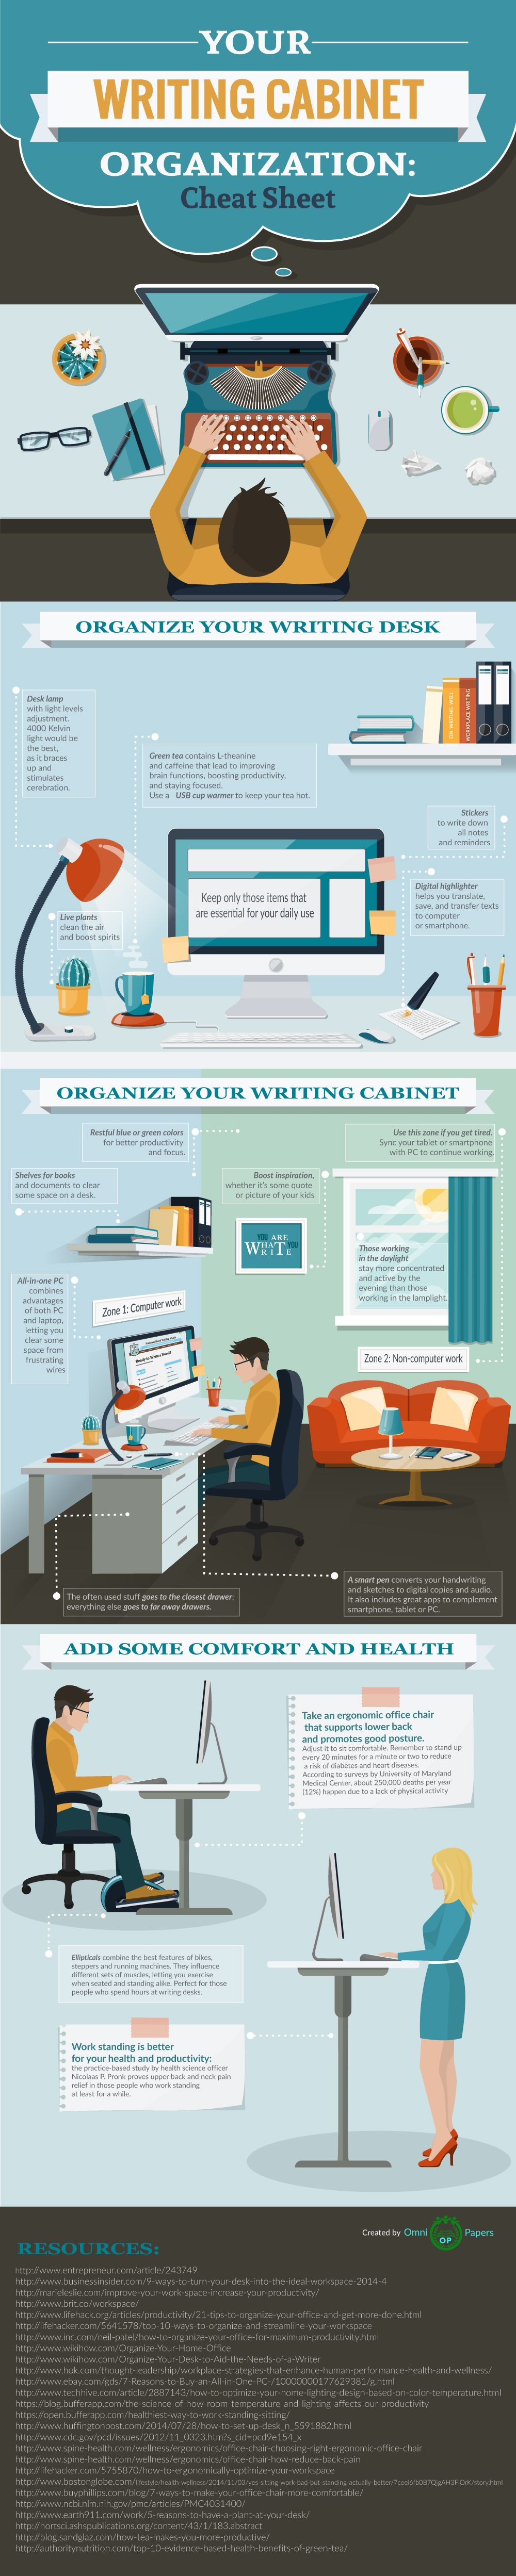 Cheat Sheet: How to Organize your Home Writing Cabinet